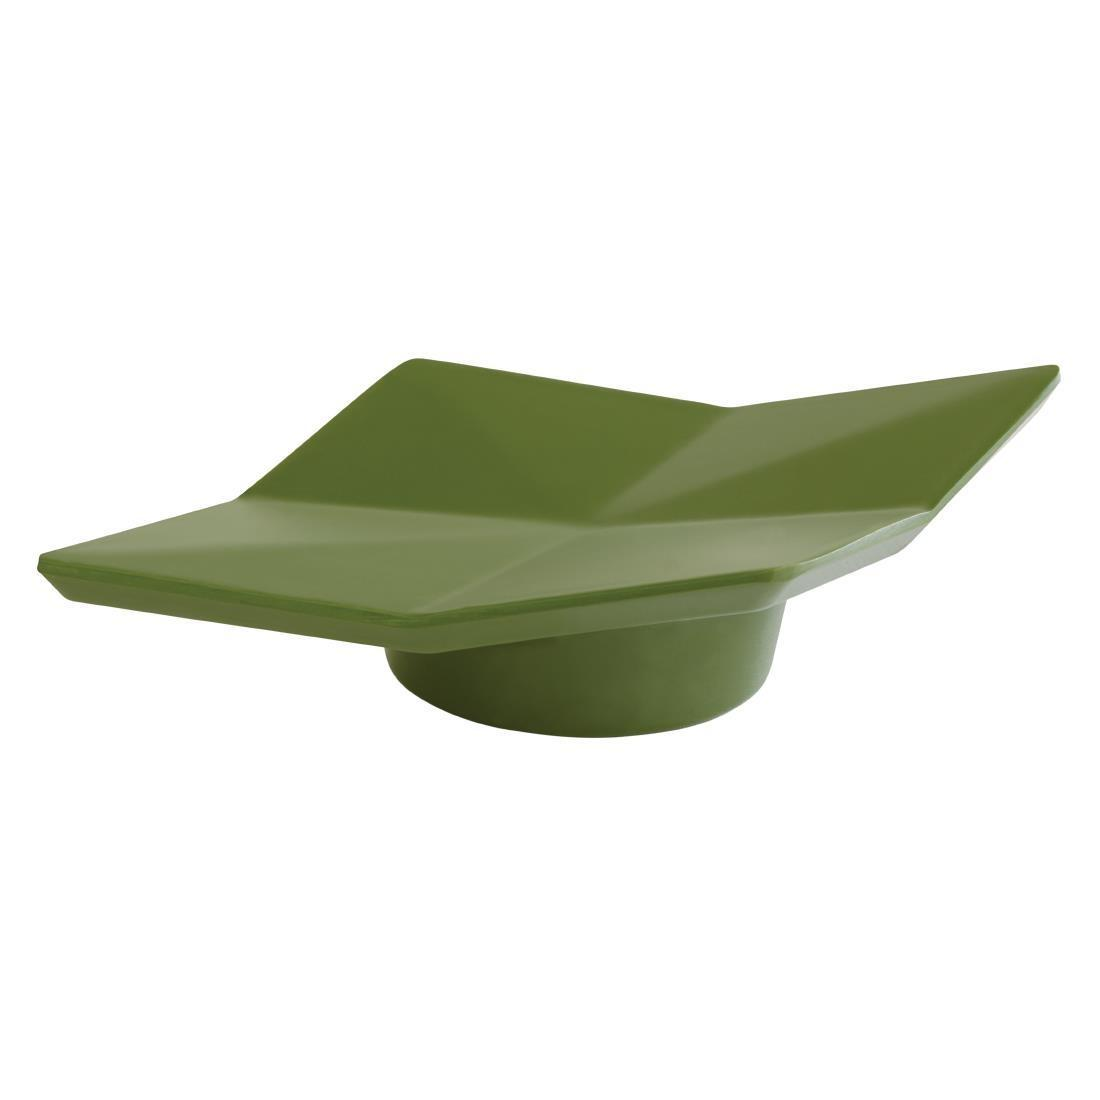 APS+ Small Lotus Leaf Plate Dark Green 150mm - Each - DT794